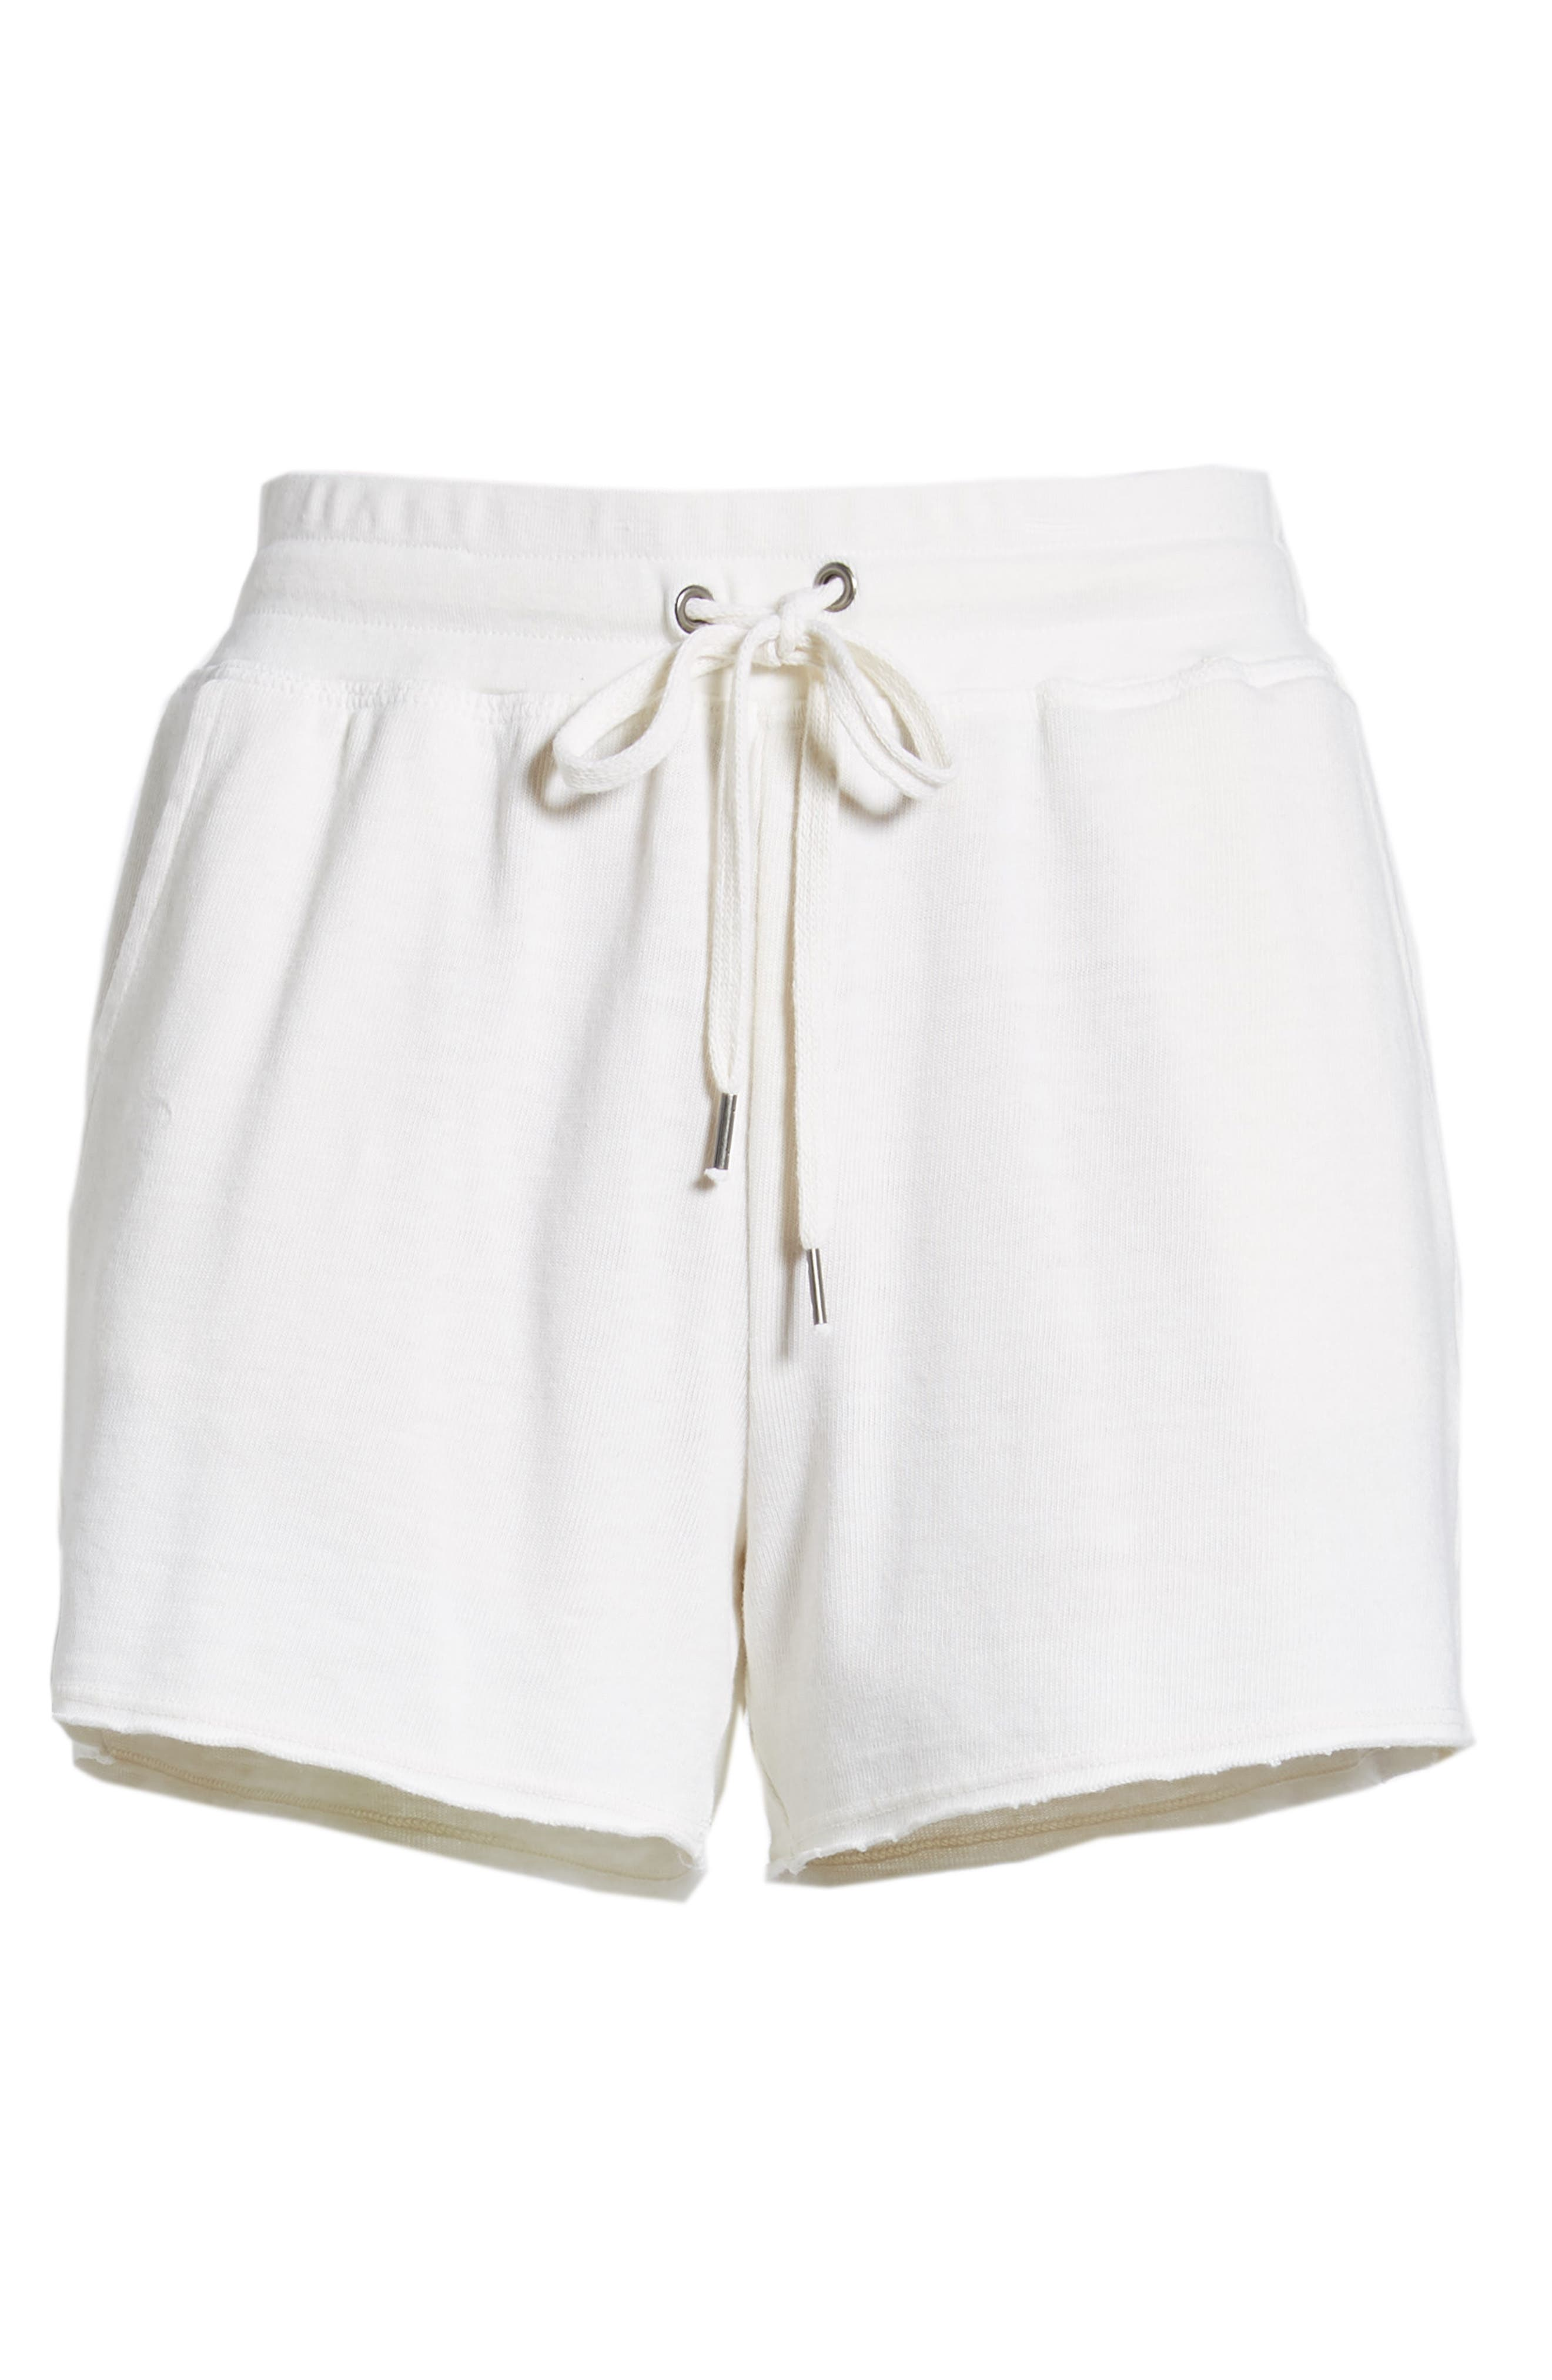 Active Shorts,                         Main,                         color, Off White